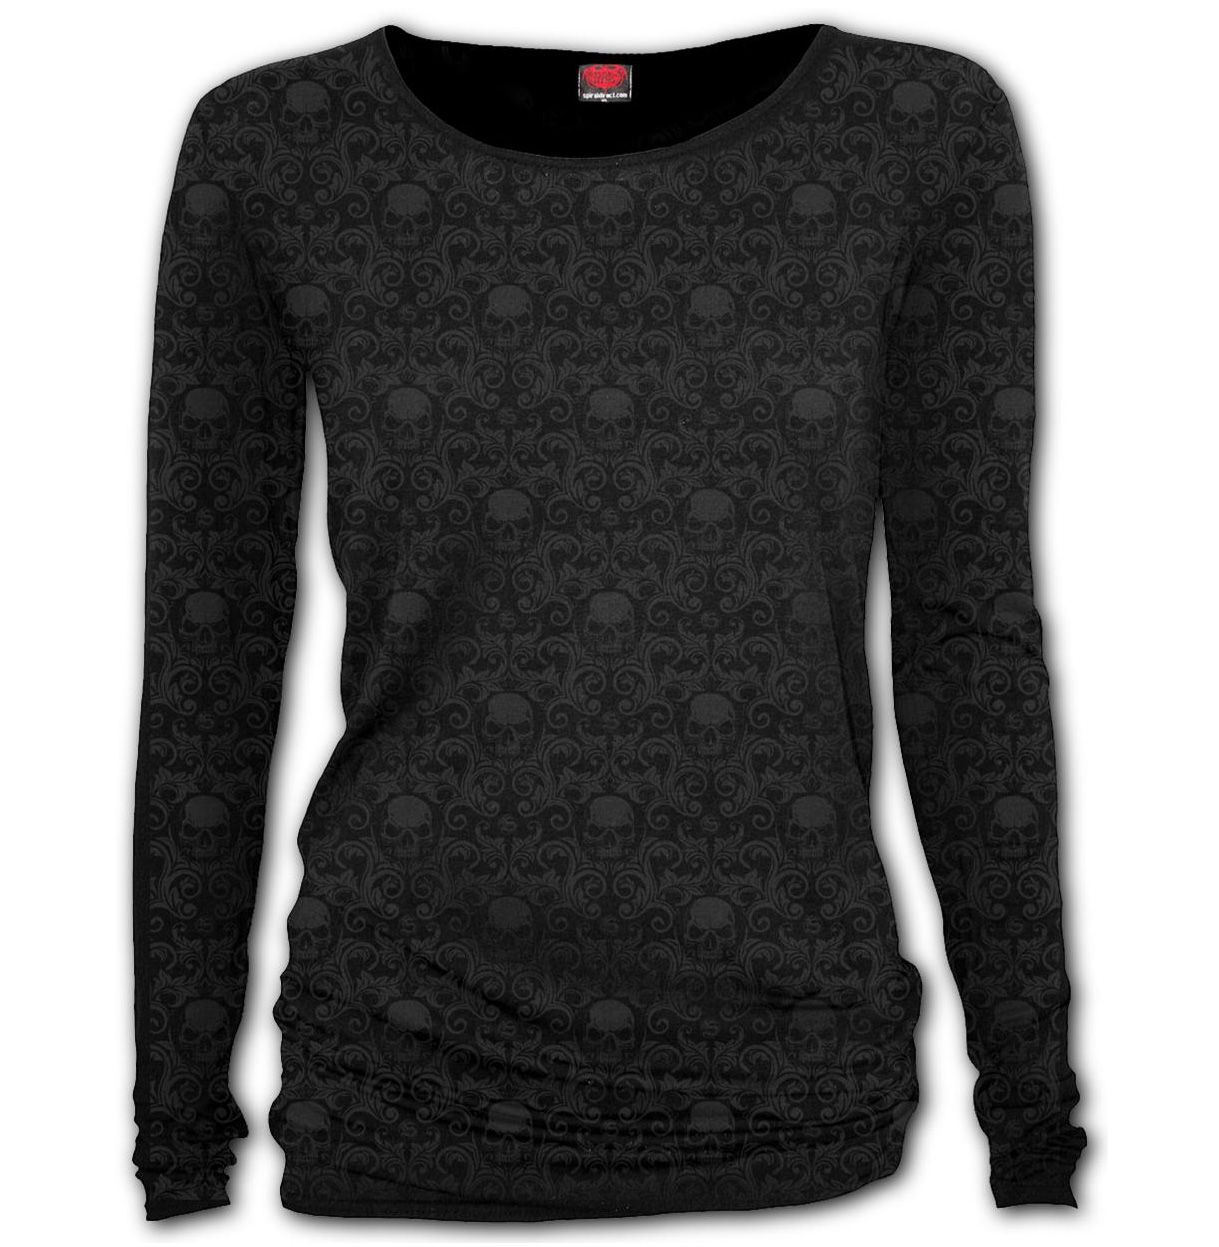 Spiral-Gothic-Elegance-Ladies-Blk-Goth-Scroll-IMPRESSION-L-Sleeve-Top-All-Sizes thumbnail 3